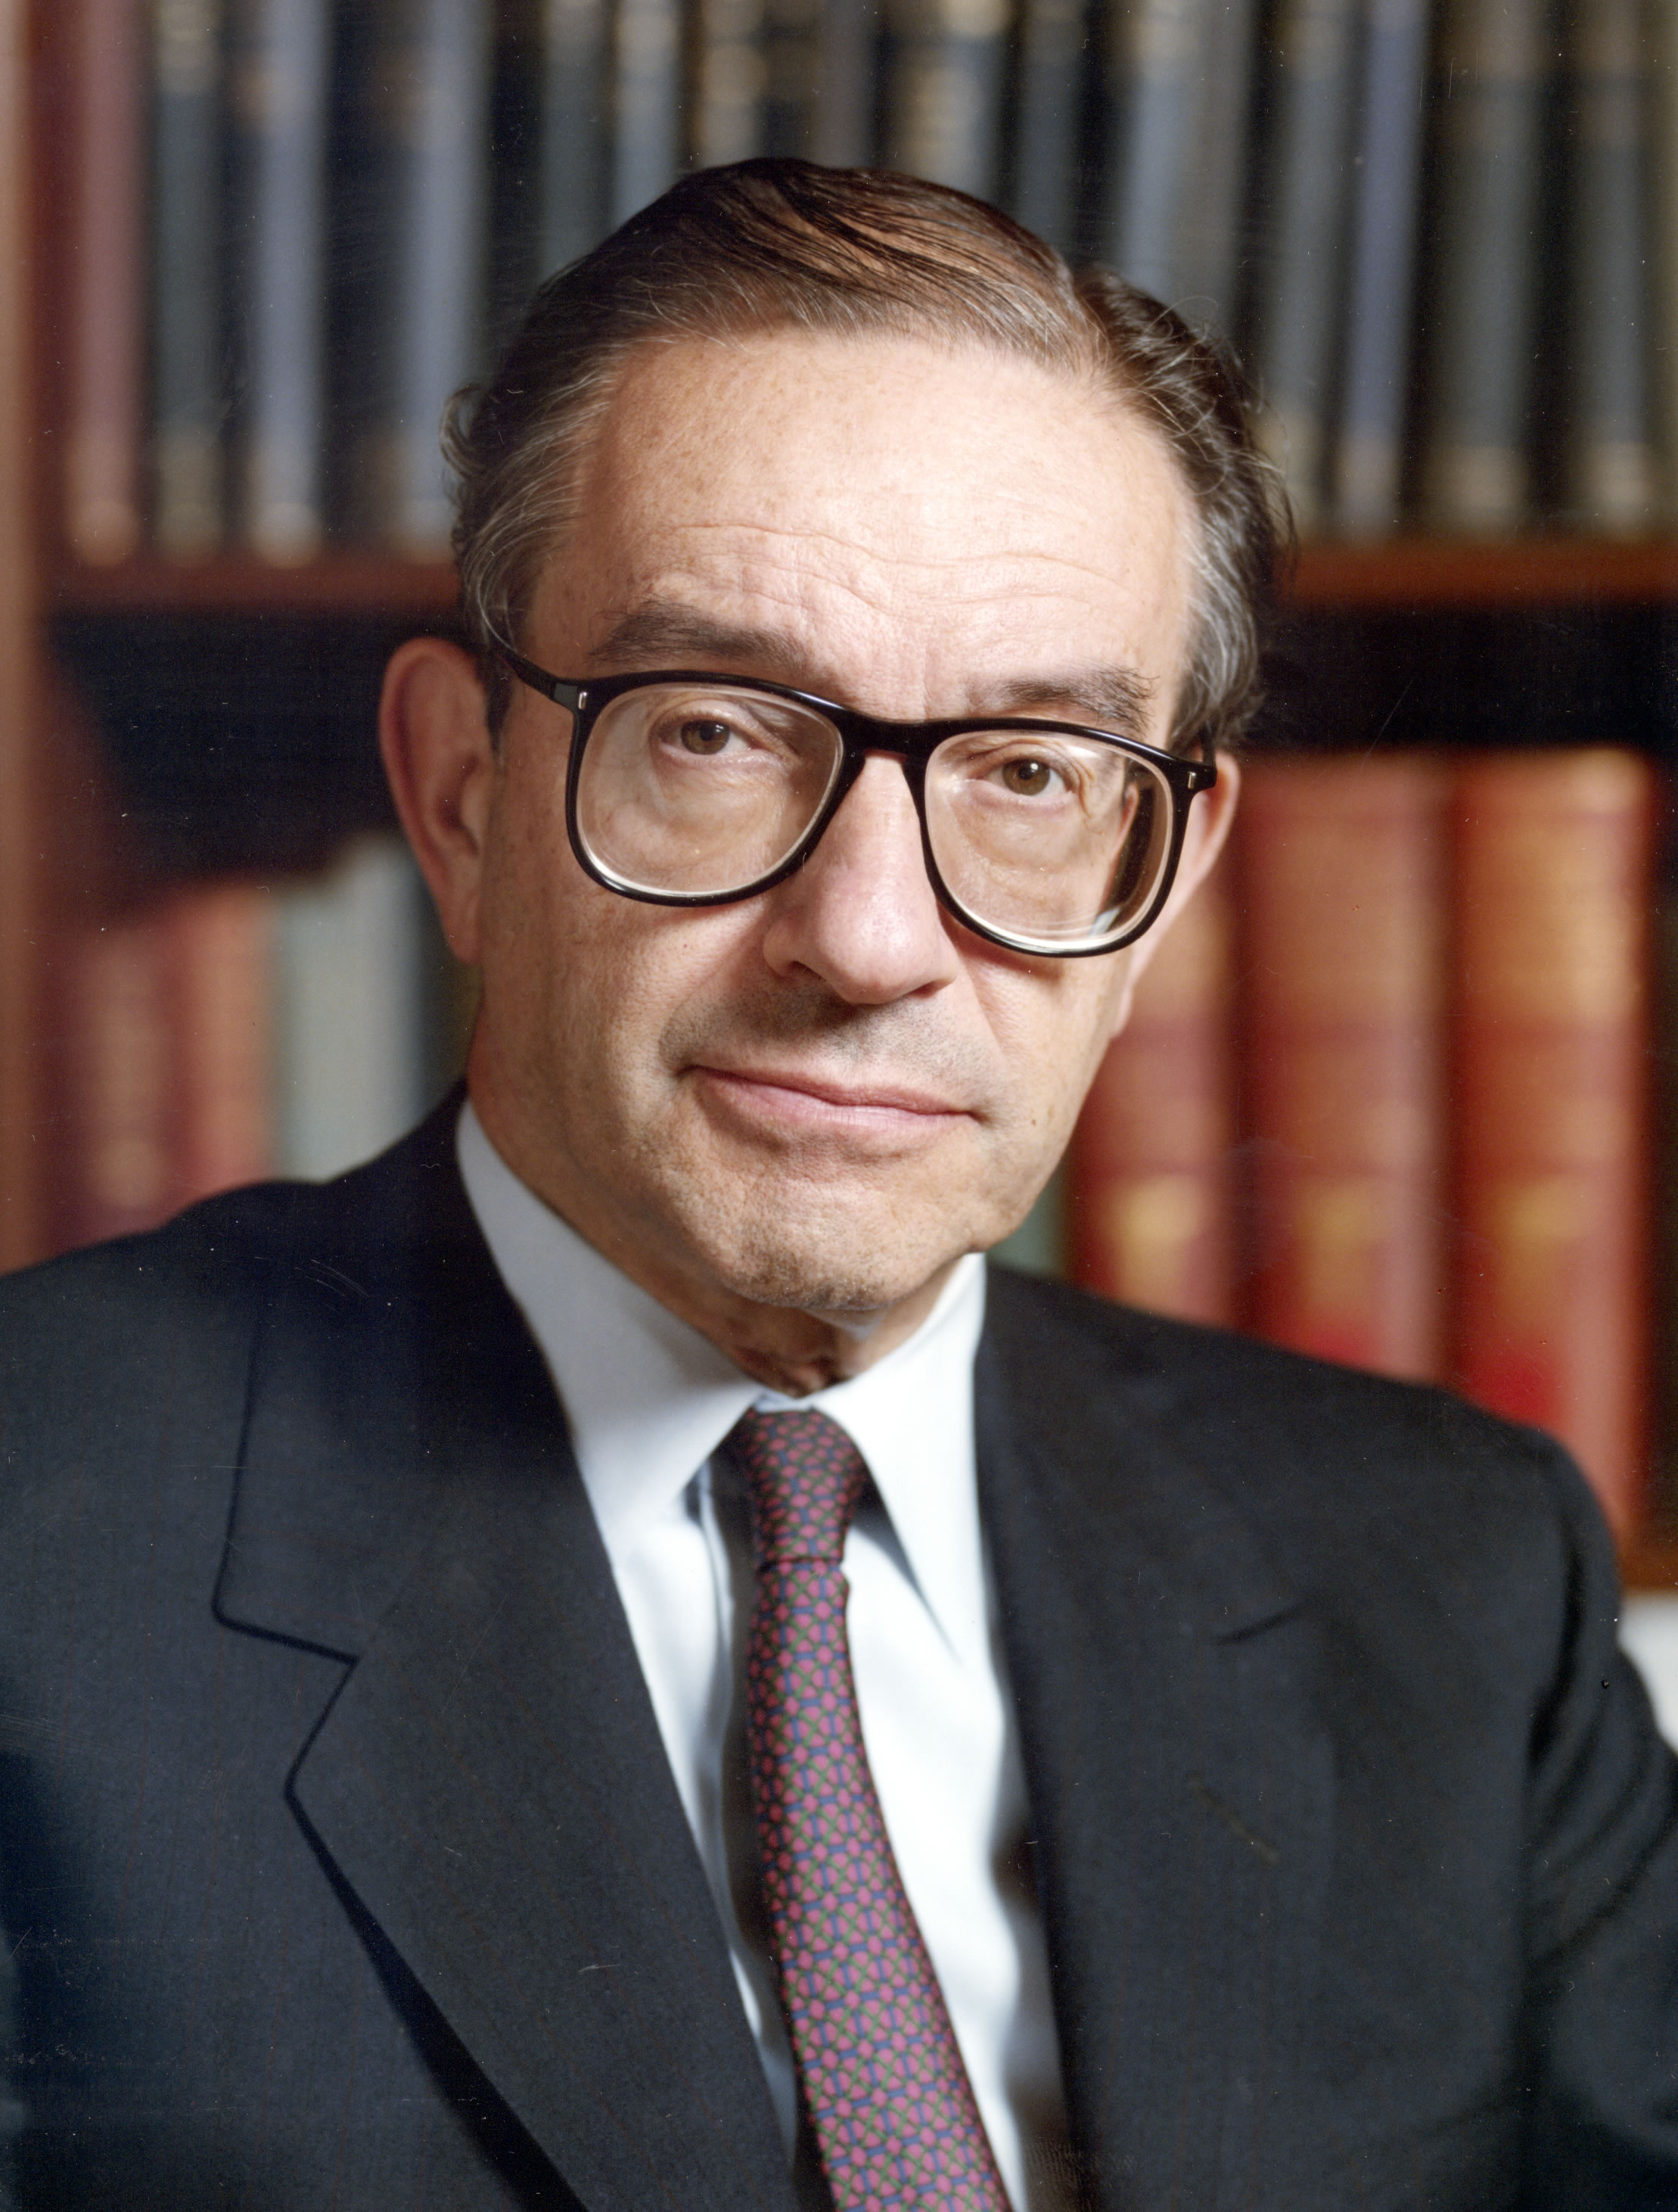 the role successes and influence of alan greenspan during his tenure at the federal reserve